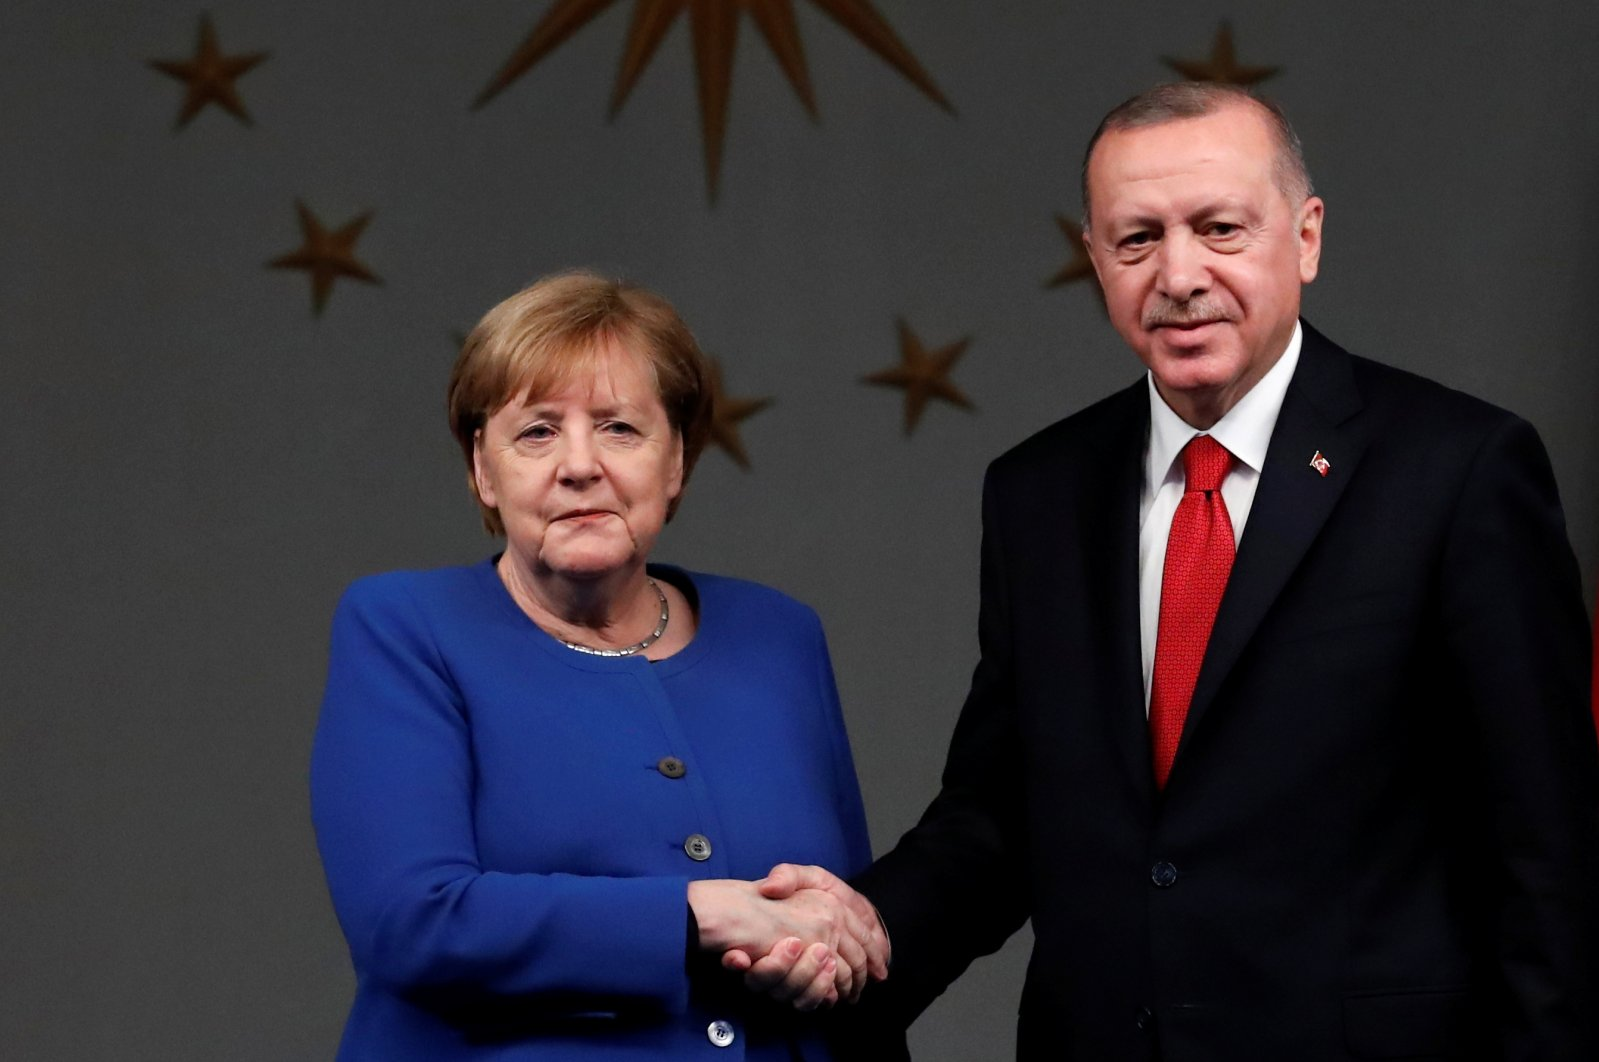 Turkish President Recep Tayyip Erdoğan and German Chancellor Angela Merkel shake hands after a joint news conference in Istanbul, Turkey, Jan. 24, 2020. (Reuters Photo)